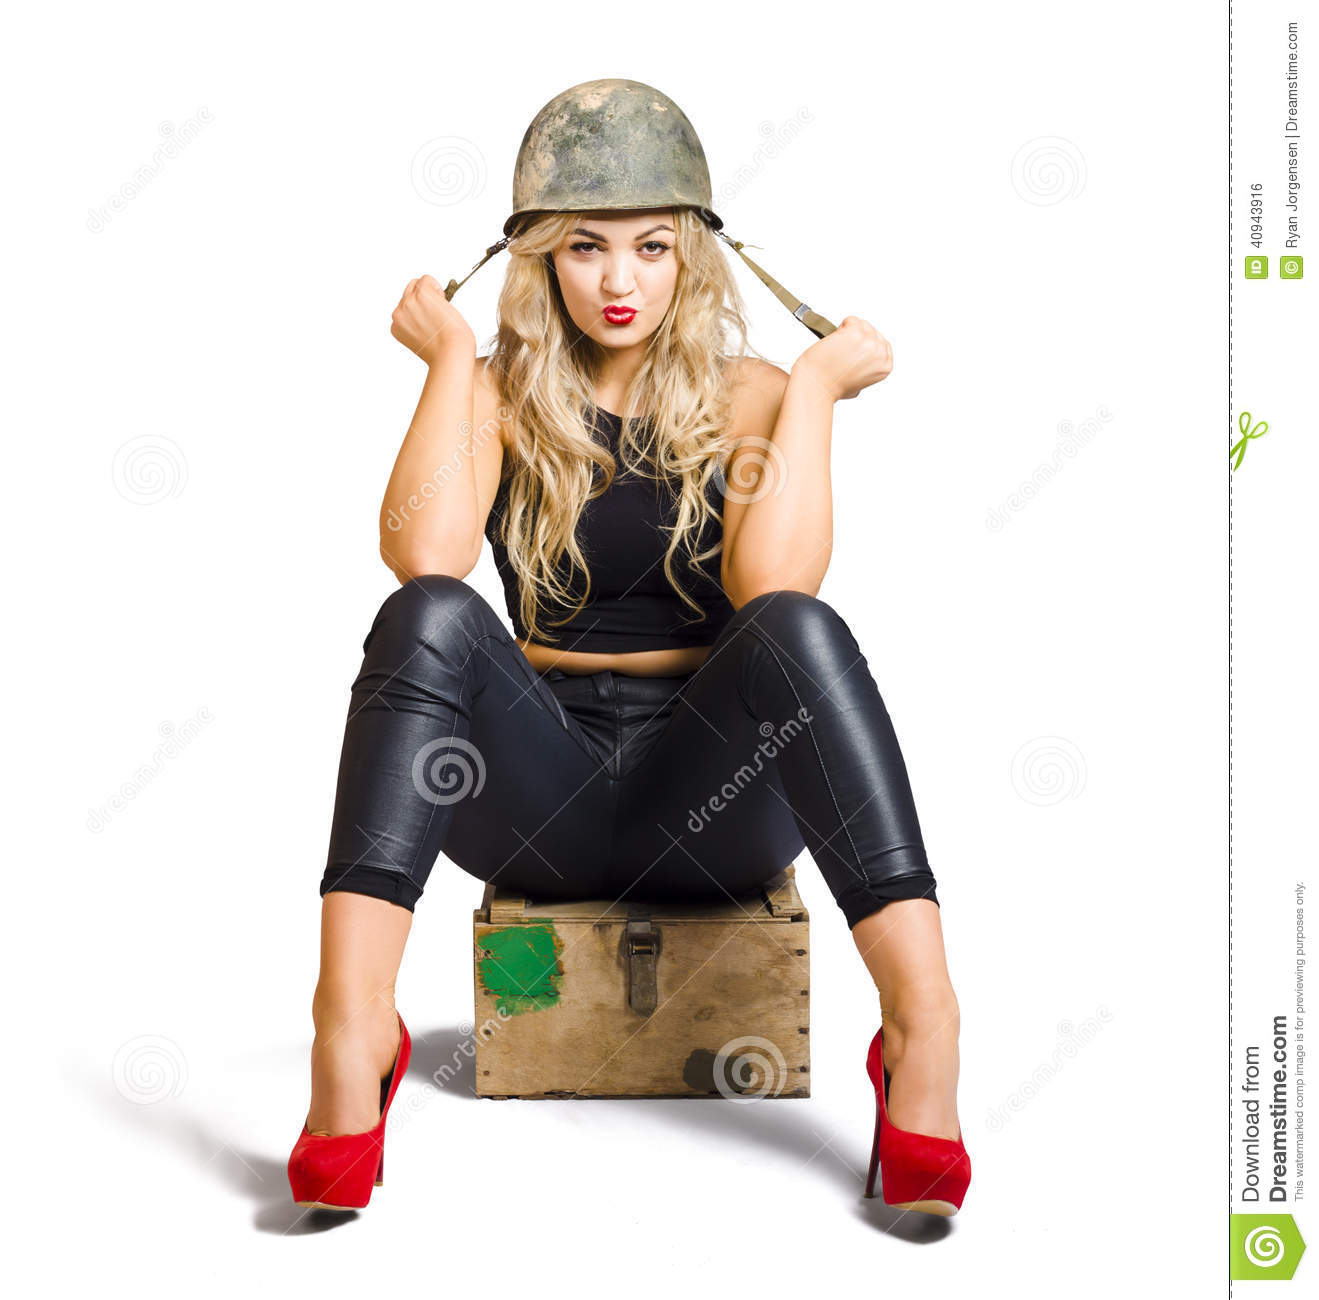 Pretty female pin up soldier on white background stock photo image 40943916 - Photo pin up ...